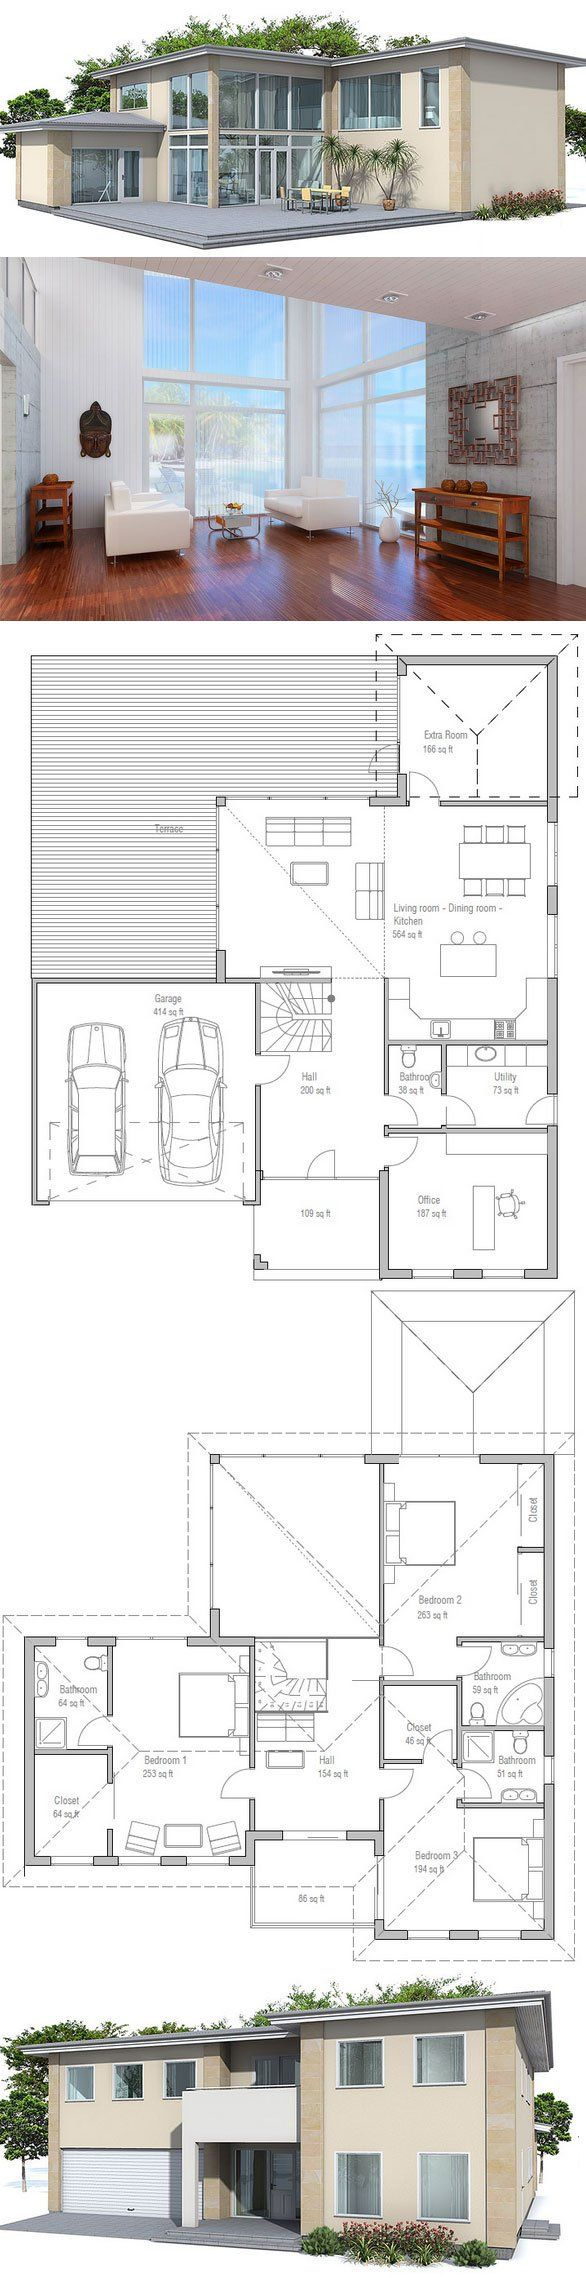 best 25 two car garage ideas on pinterest garage with apartment four bedrooms two living areas two car garage